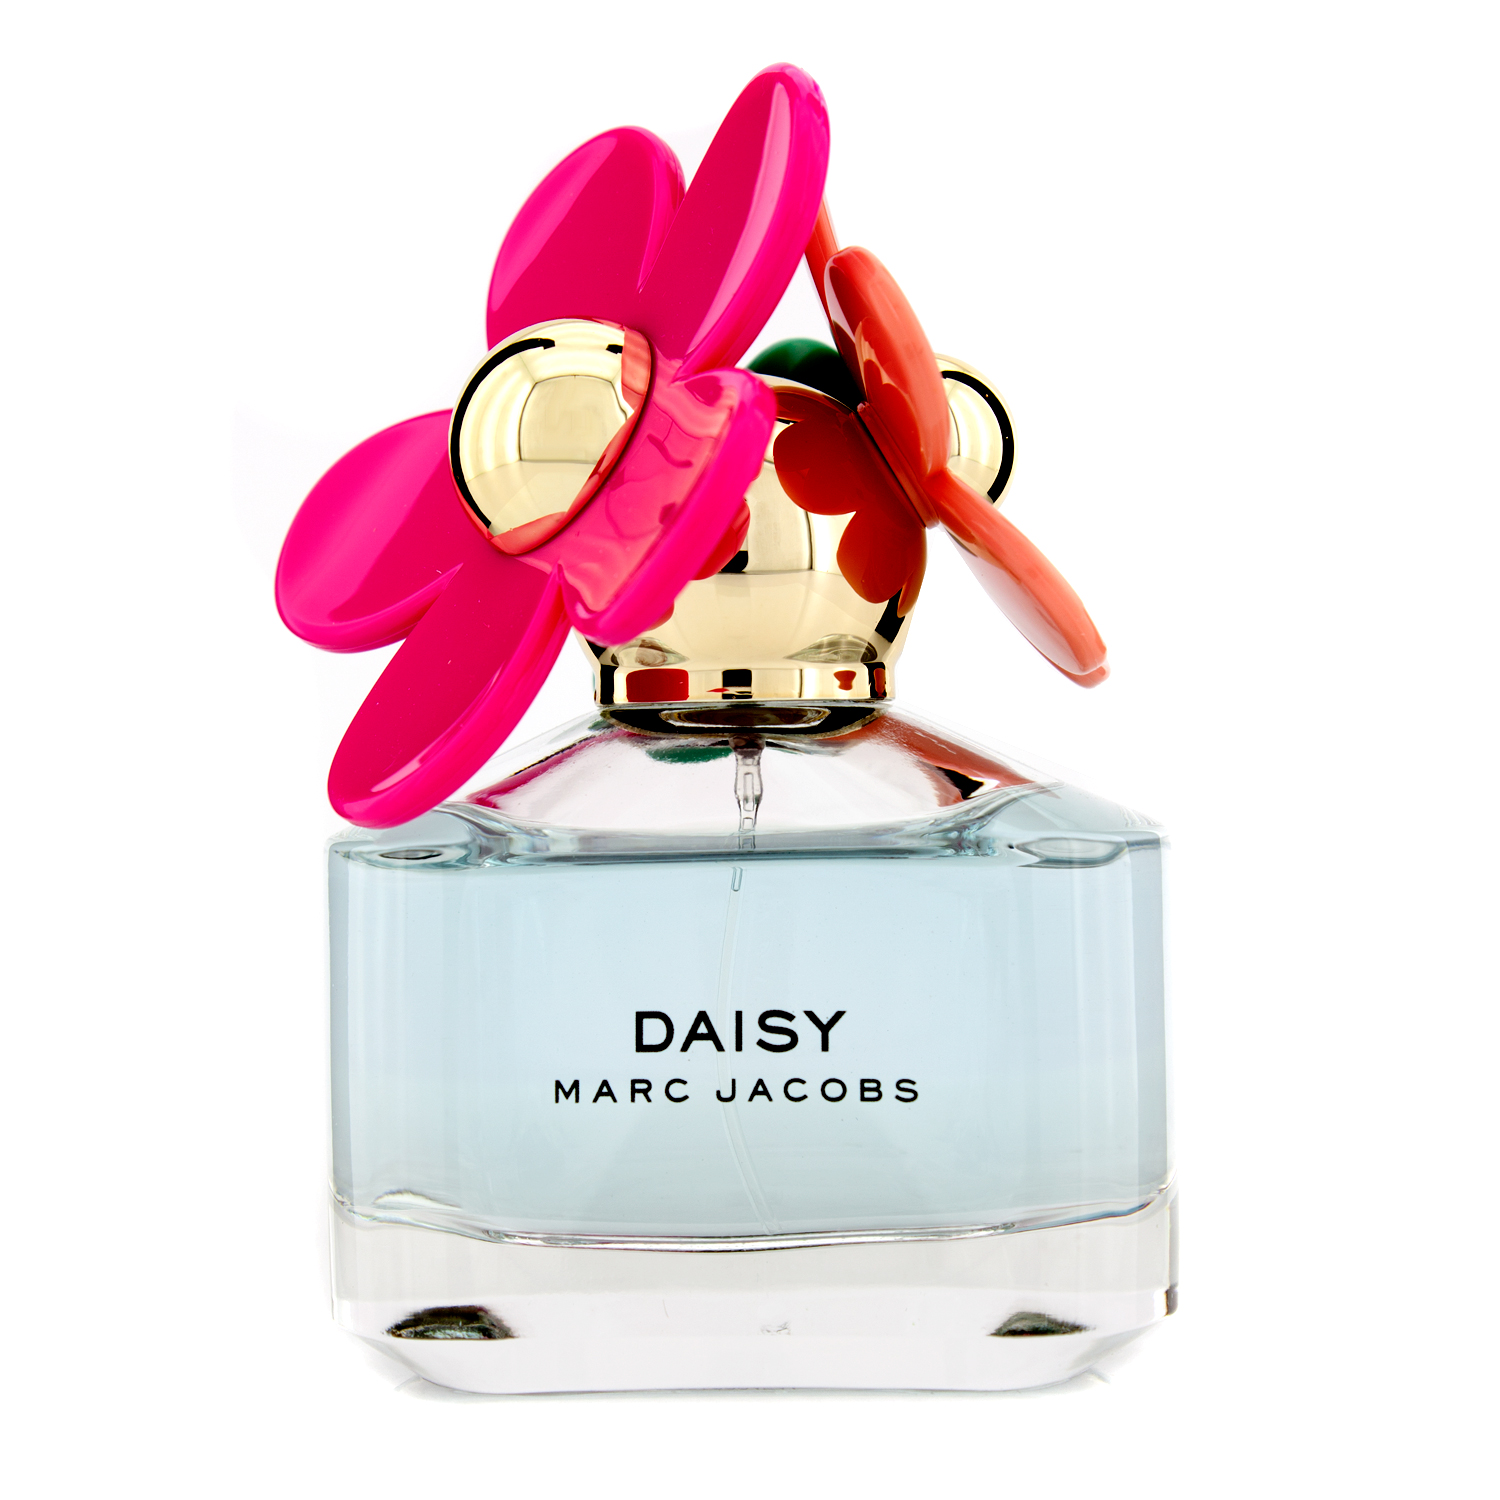 Marc Jacobs - Daisy Delight Eau De Toilette Spray (Limited Edition) - 50ml/1.7oz